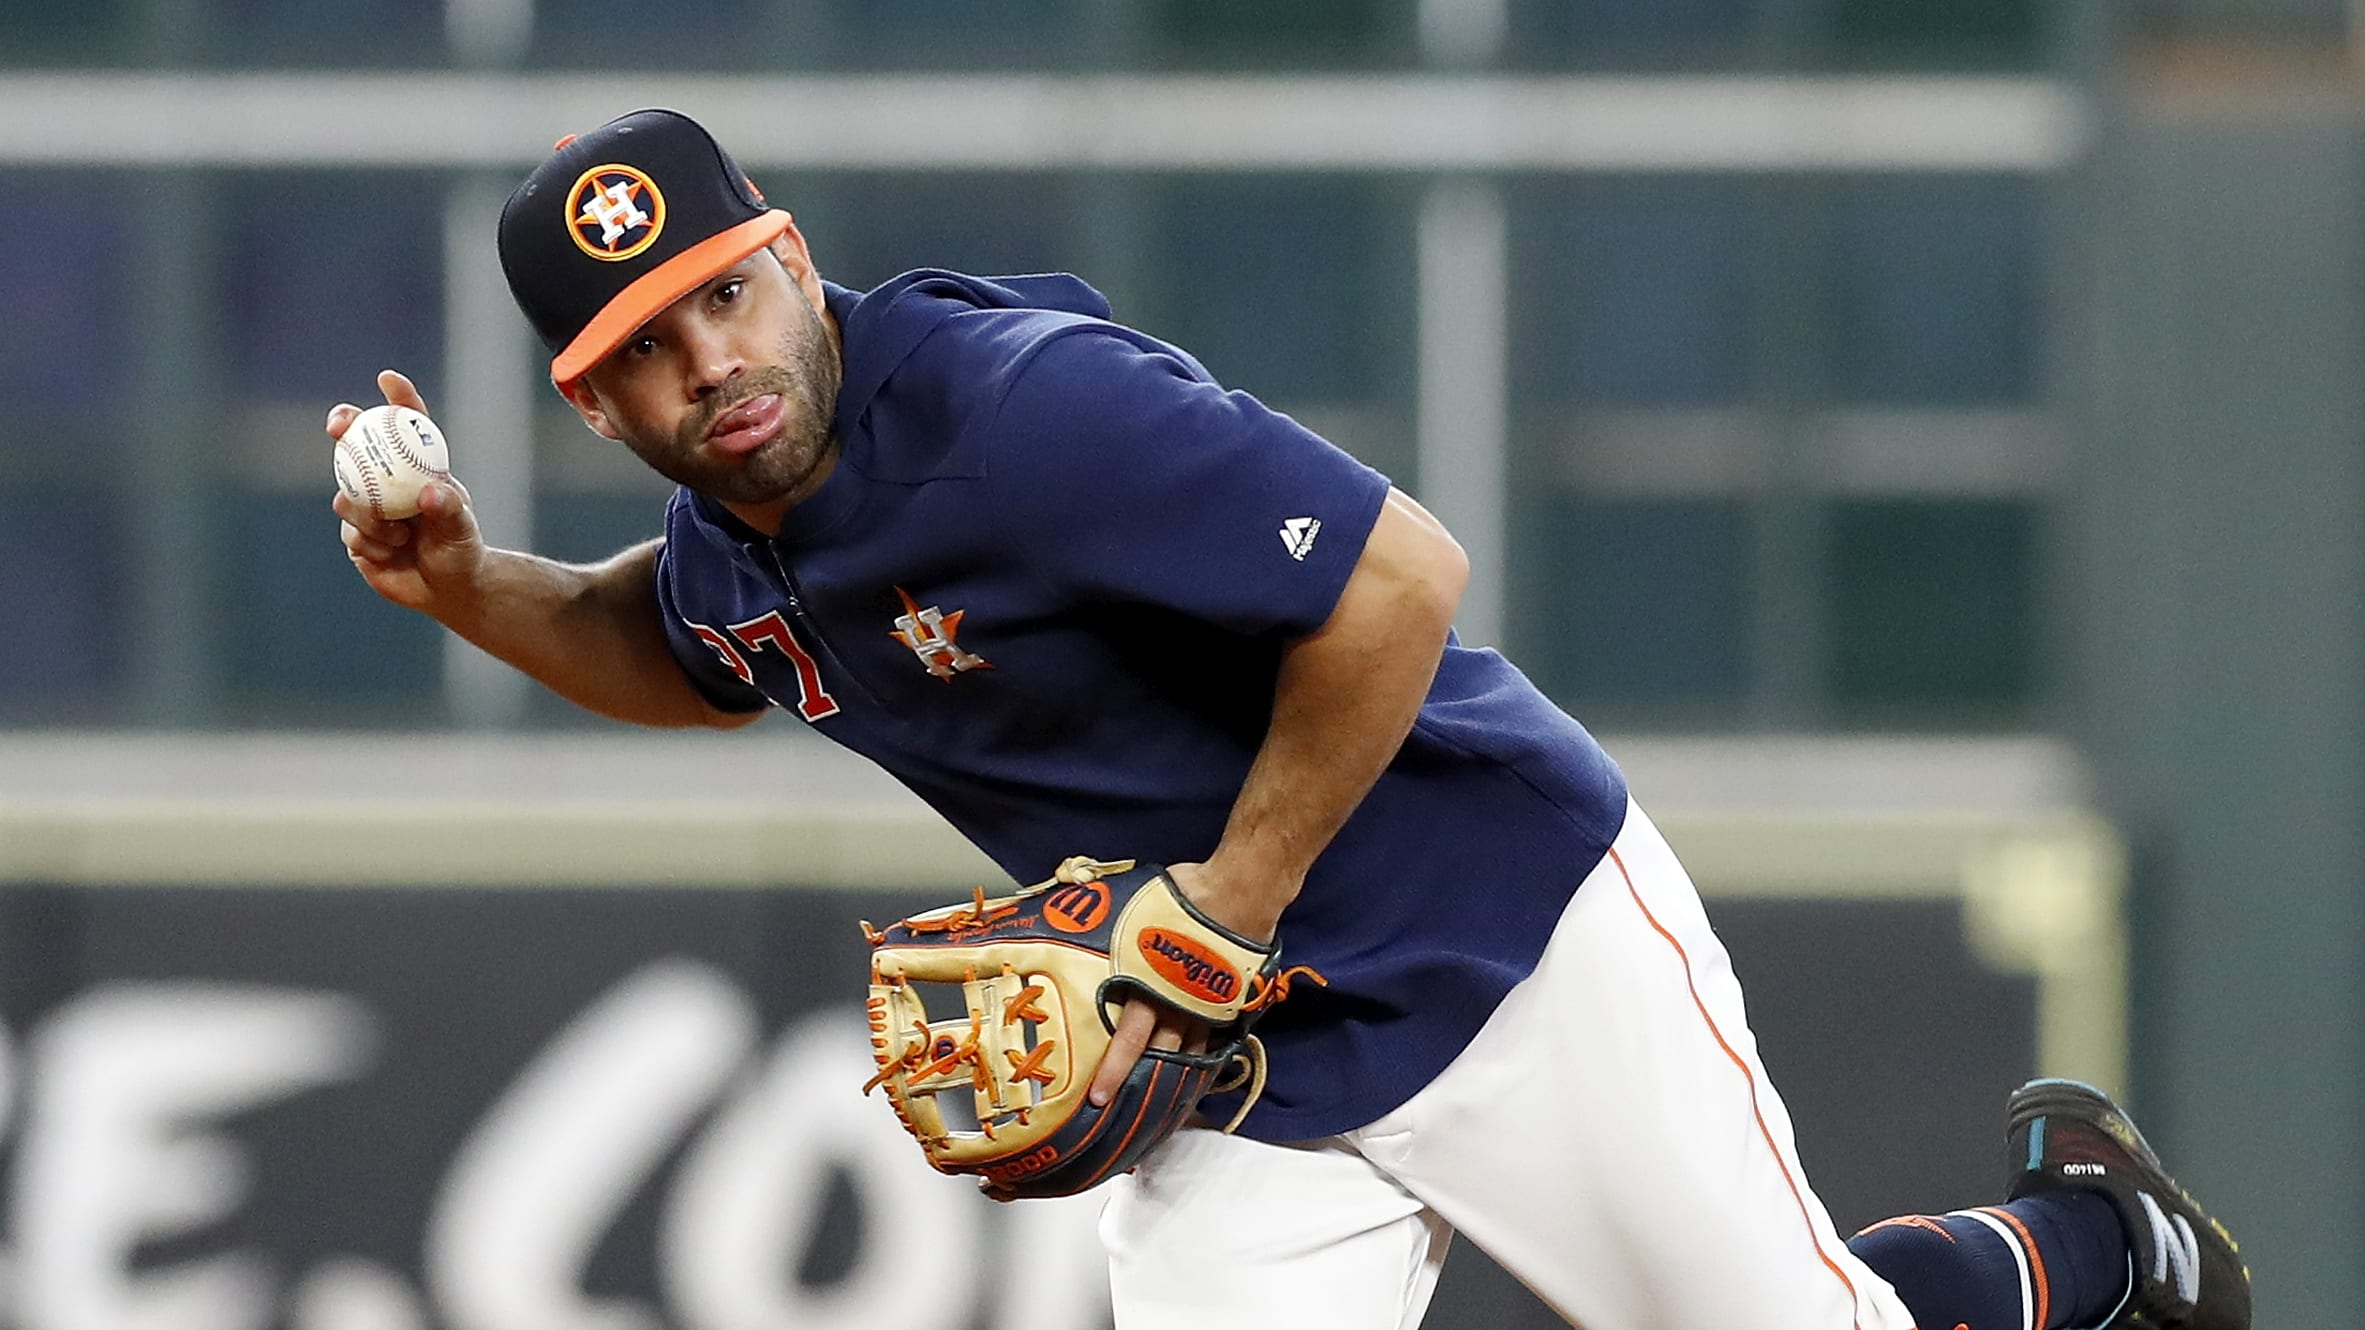 HOUSTON, TX - MAY 23:  Jose Altuve #27 of the Houston Astros fields ground balls before the game against the Chicago White Sox at Minute Maid Park on May 23, 2019 in Houston, Texas.  (Photo by Tim Warner/Getty Images)